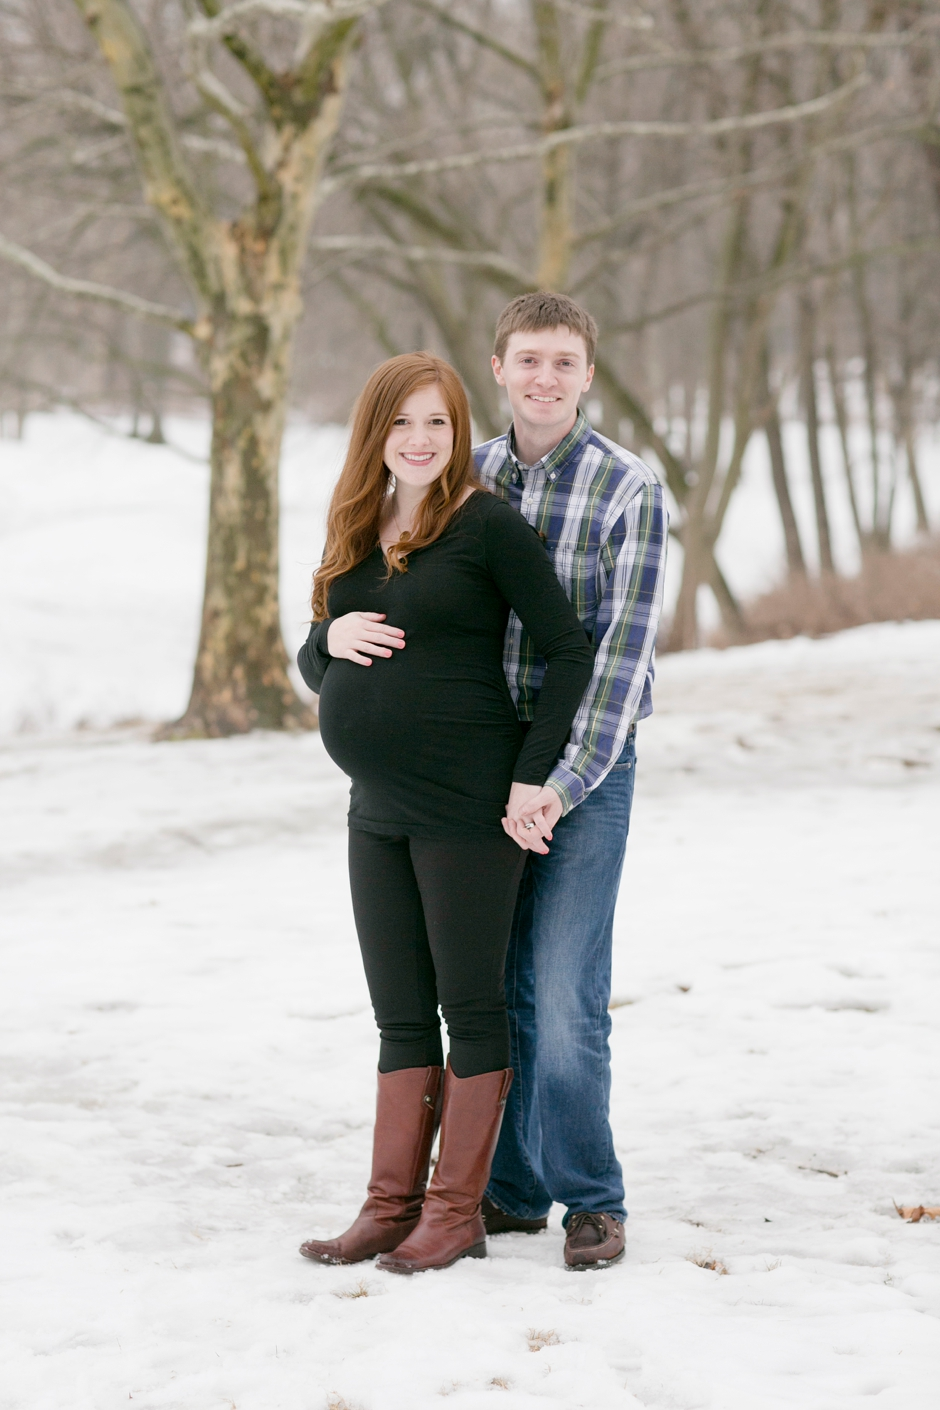 louisville-maternity-photos-snow-005